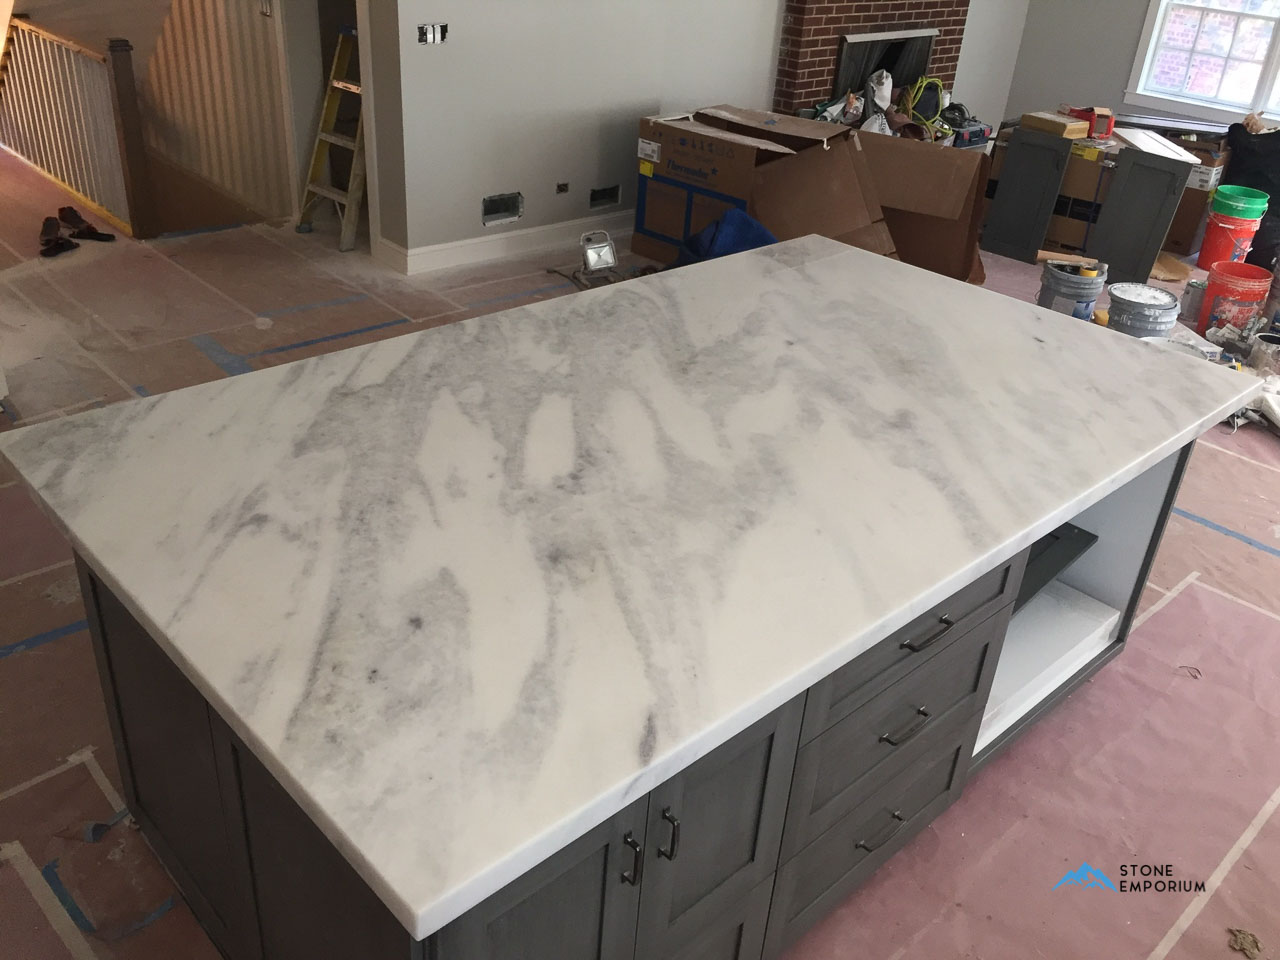 Q. Whatu0027s The Best Way To Keep My Quartz Countertops In Top Shape Every Day?